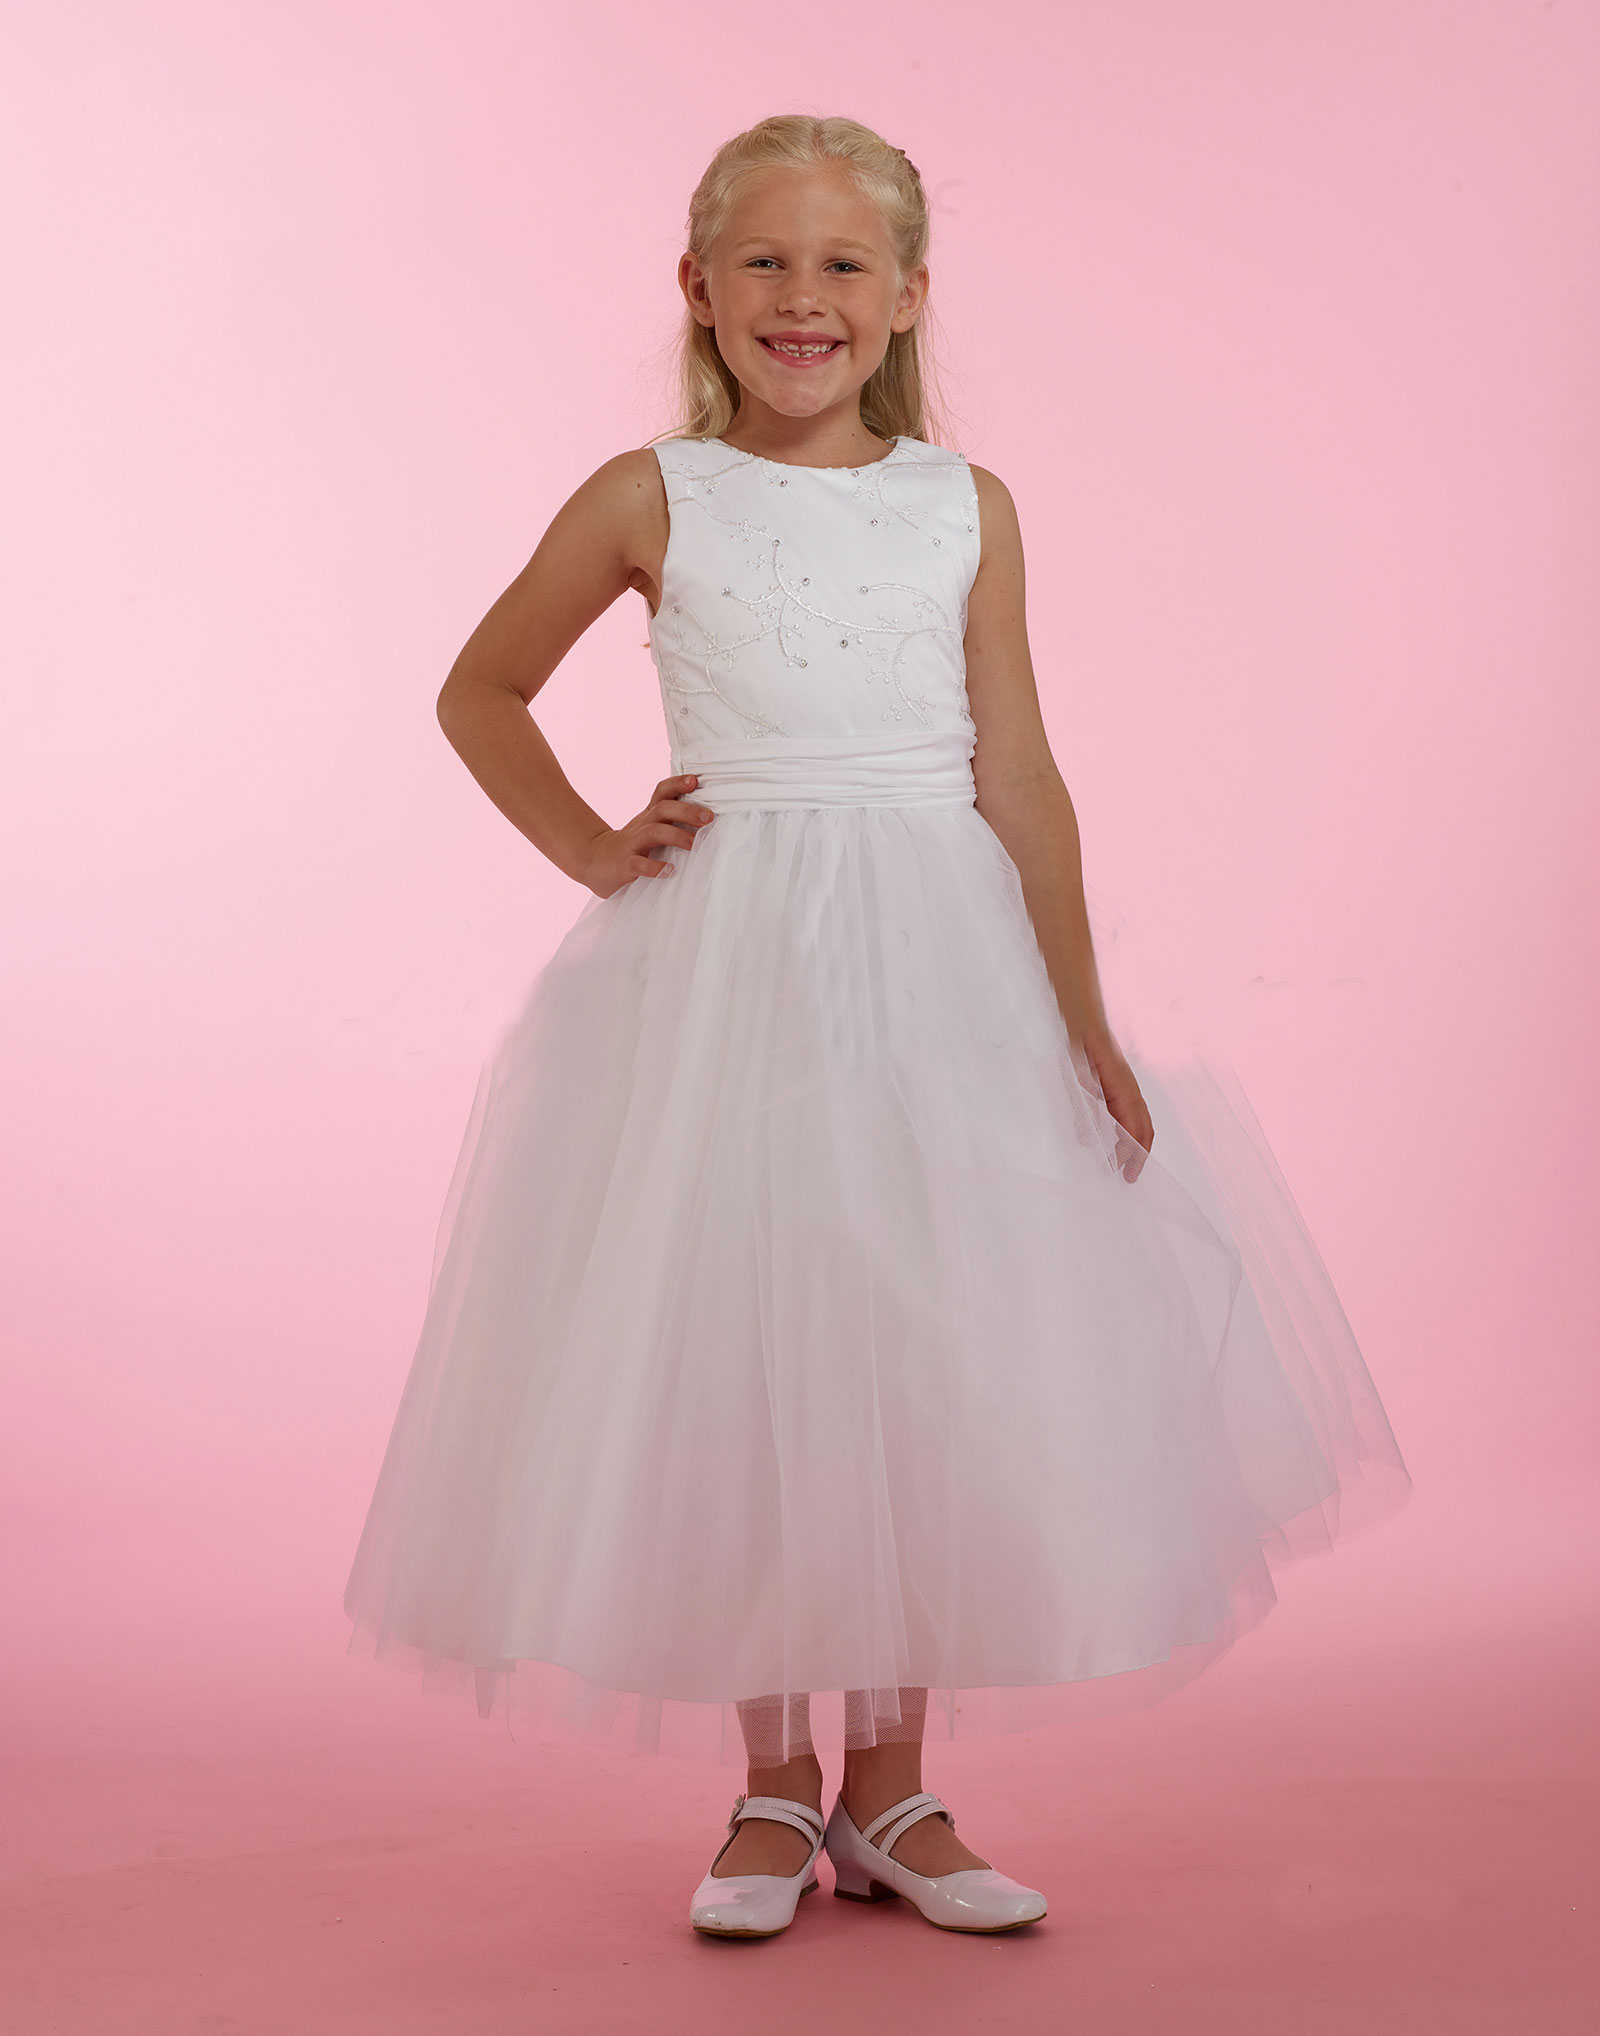 MD T2021 Couture Designer Girls Dress Style T2021 WHITE Embroidered Satin